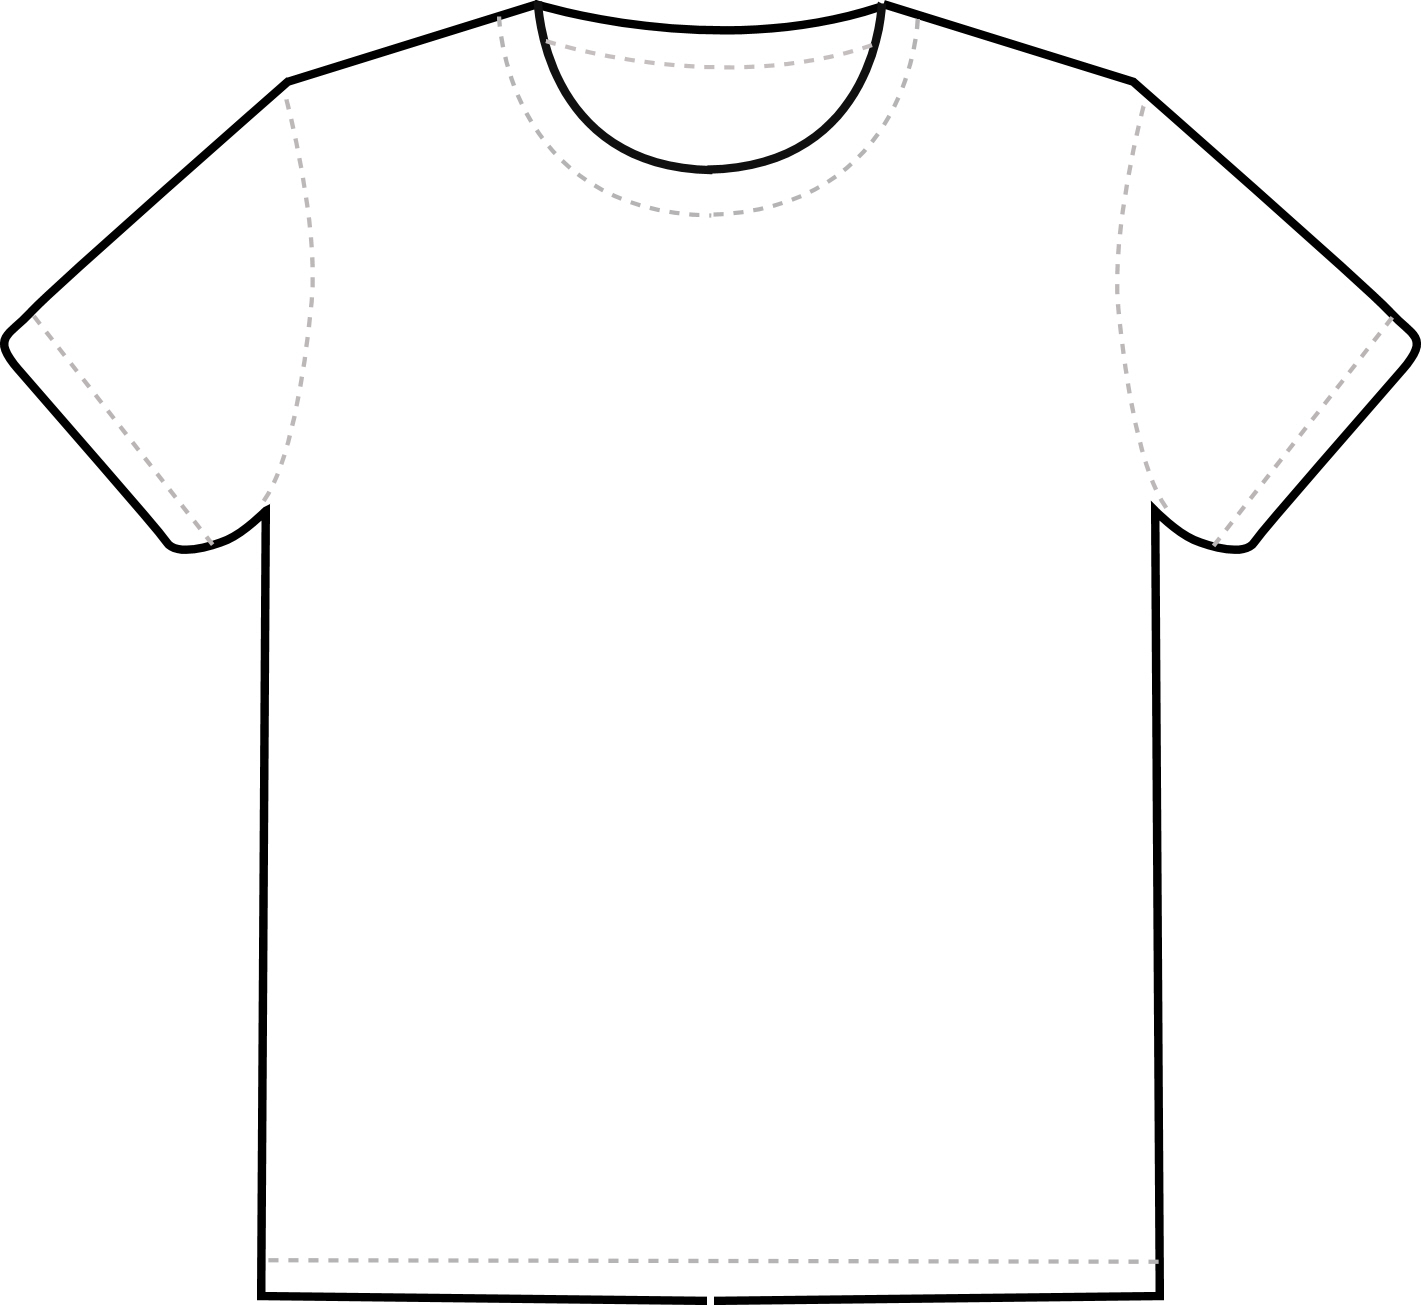 Tees Template. a collection of free t shirt templates blueblots ...